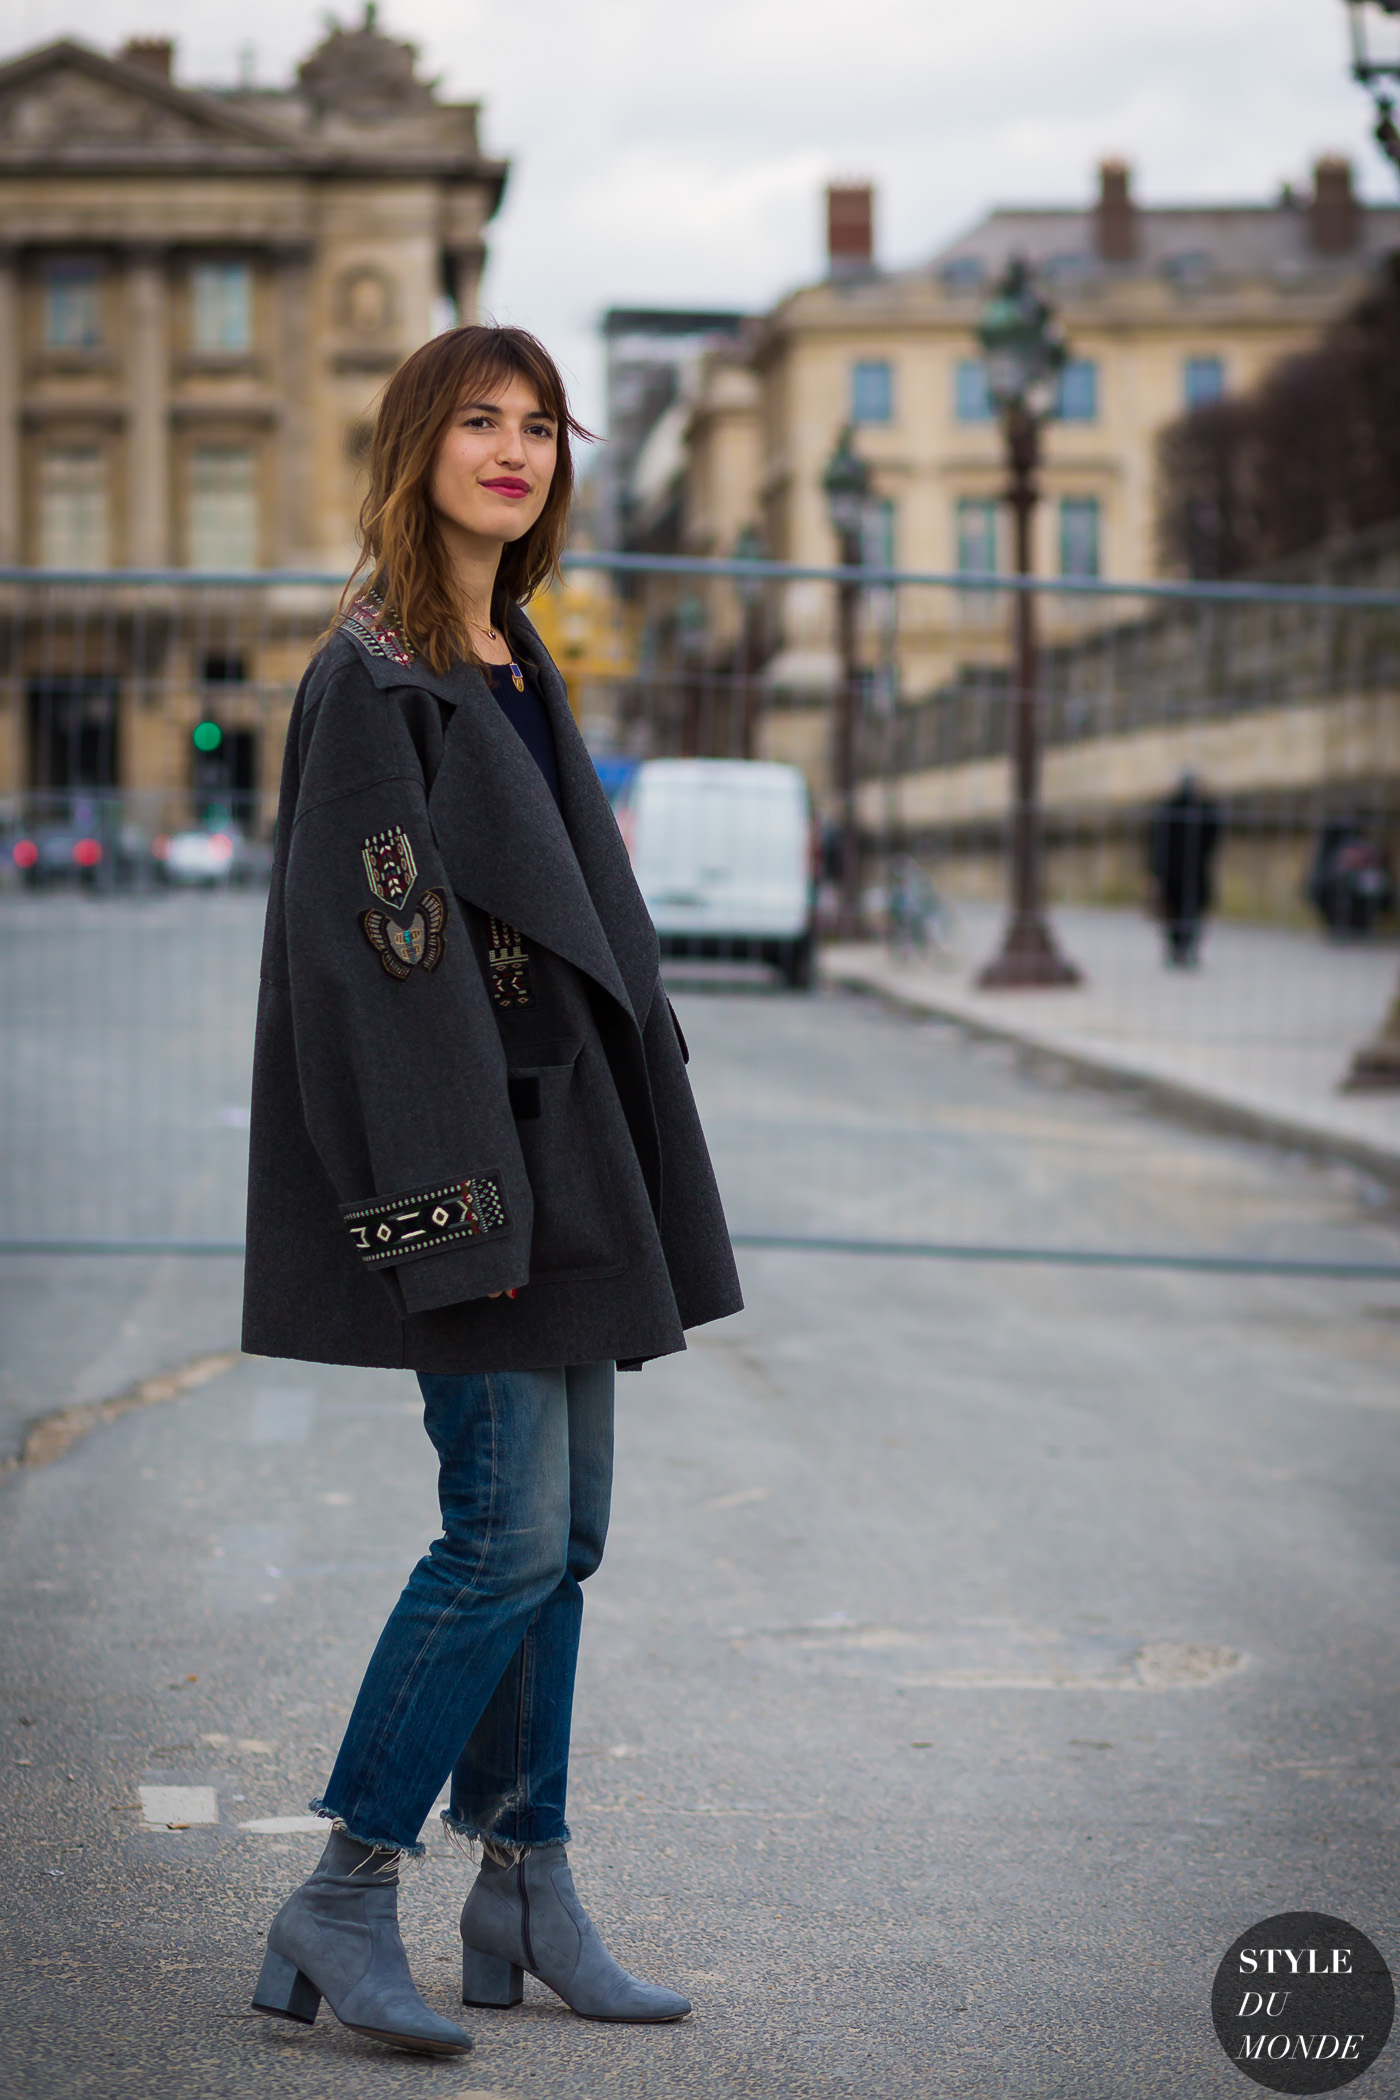 Jeanne Damas Street Style Street Fashion Streetsnaps by STYLEDUMONDE Street Style Fashion Photography